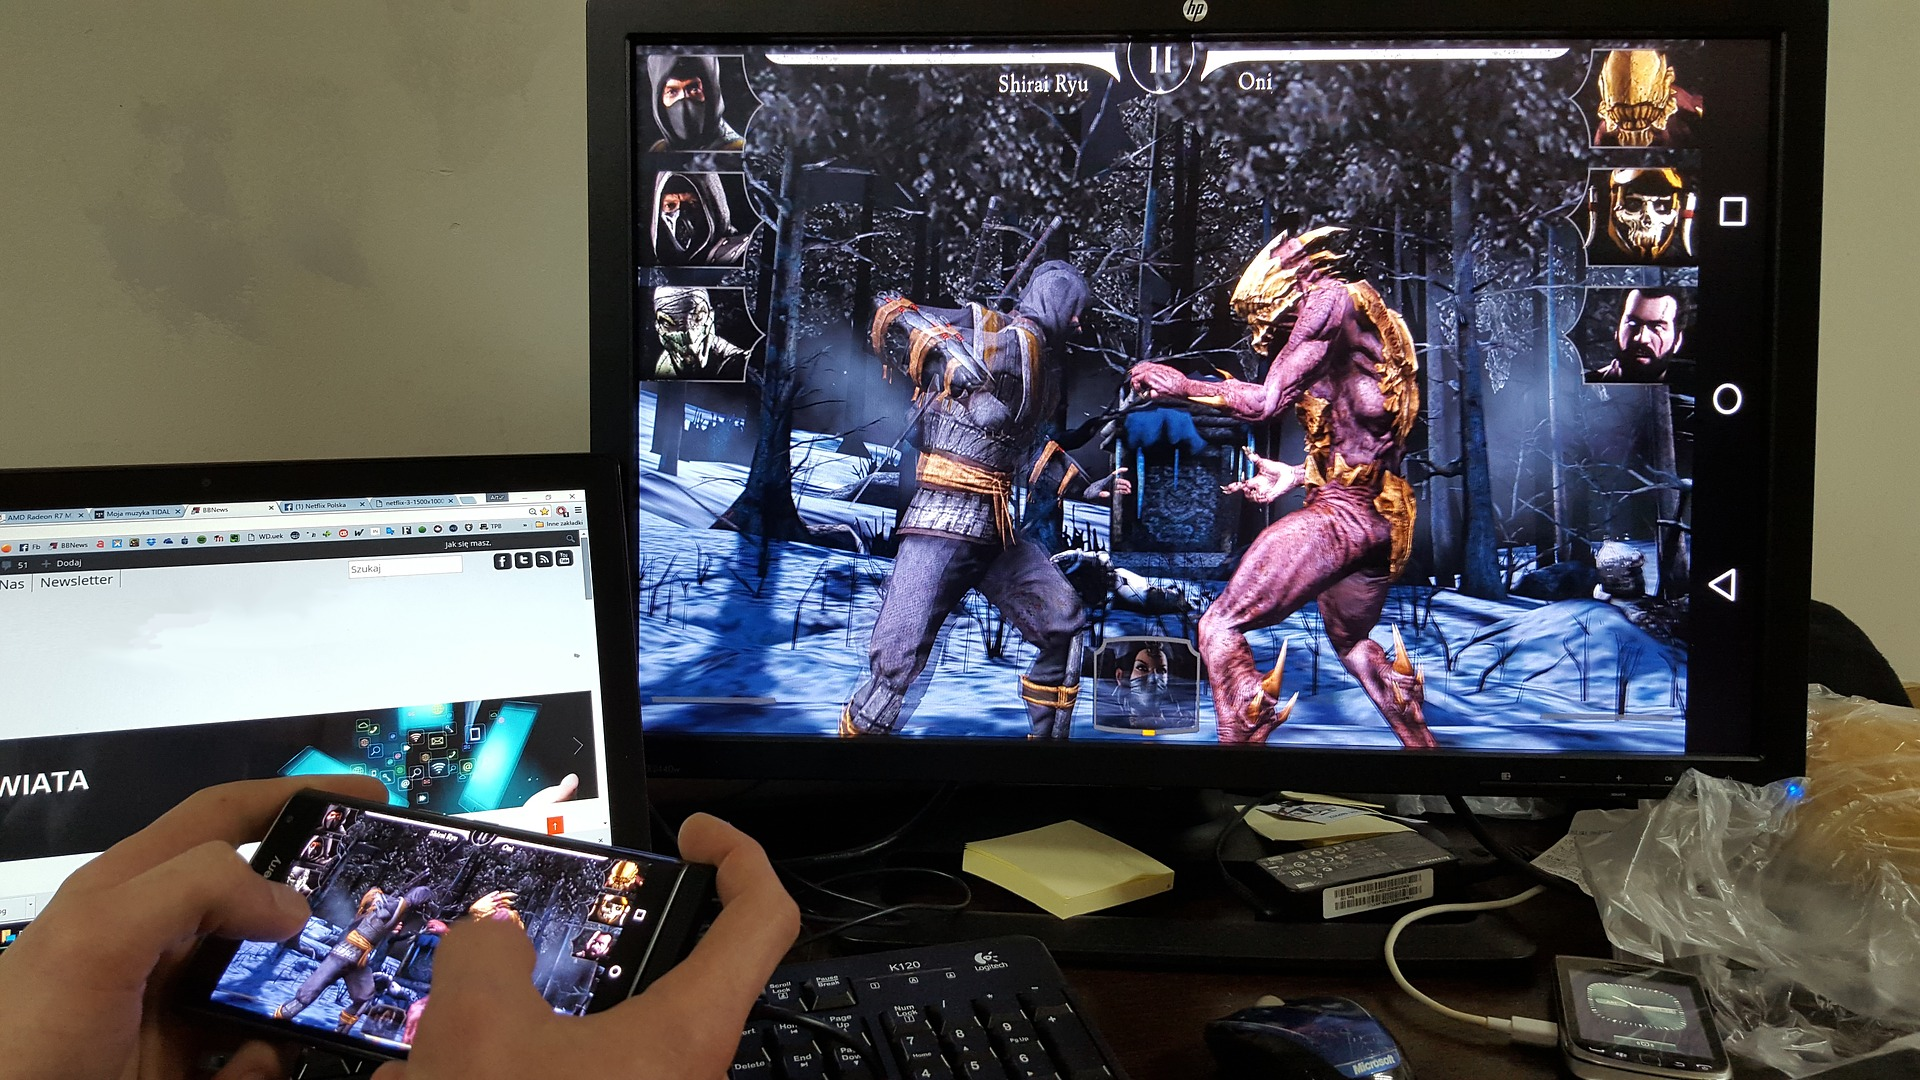 Fighting Game streamed to monitor whilst being played on mobile